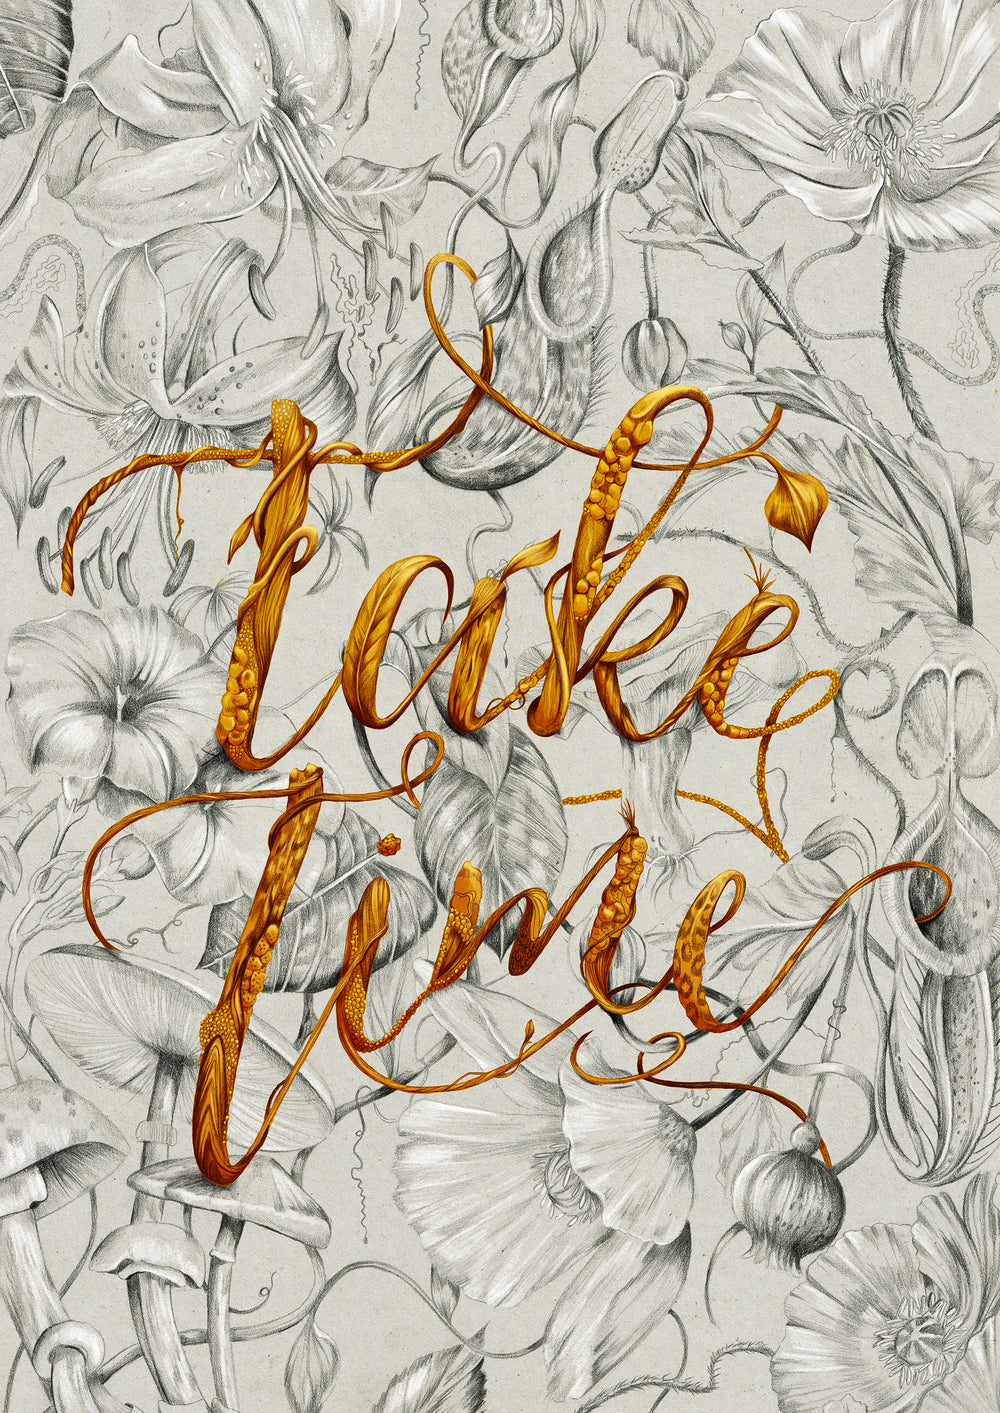 Pencil and Photoshop botanical illustration typography by Melbourne based illustrator Kelly Thompson